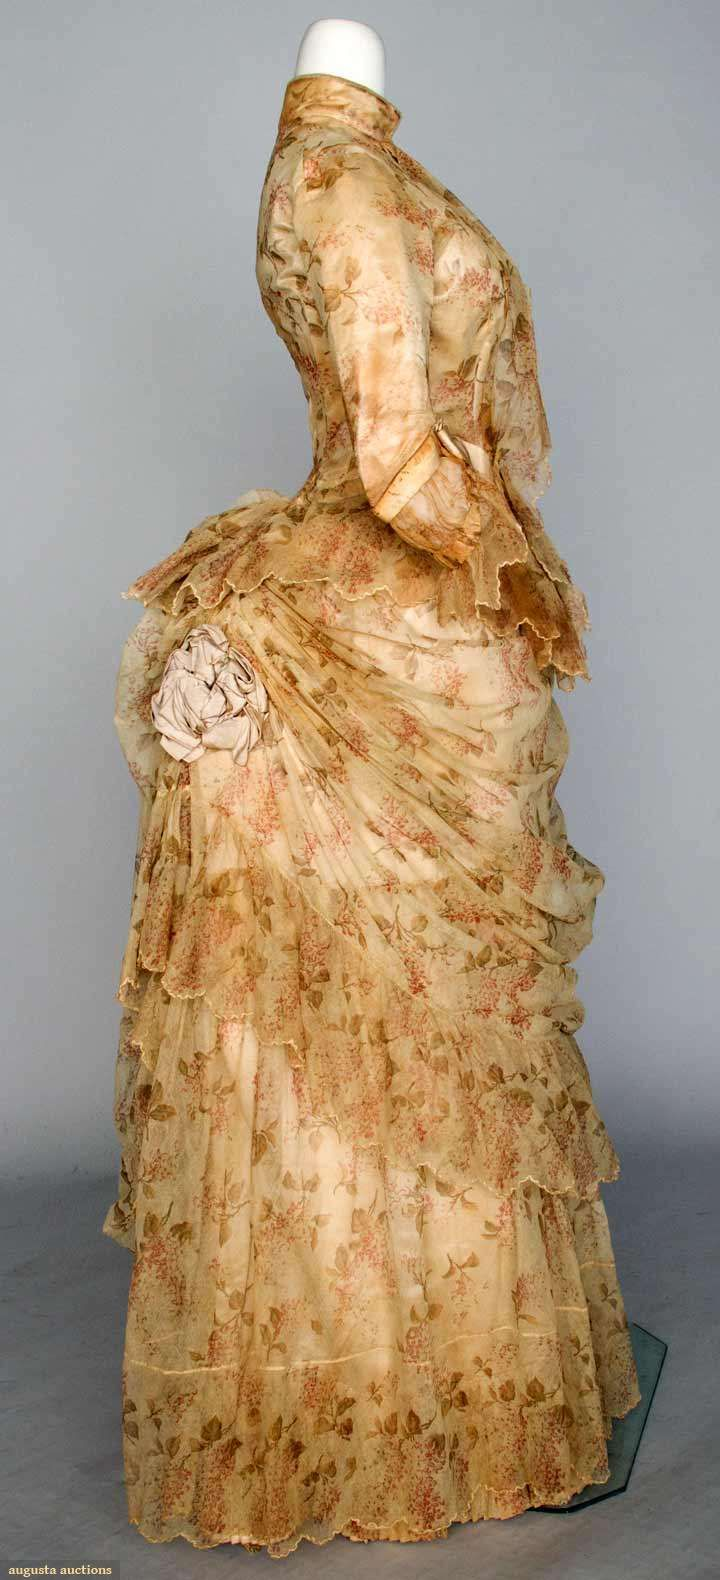 """Printed Tulle Bustle Dress, Two Piece Cream Cotton Tulle Printed With Small Sprays Of Rose Colored Flowers And Green Leaves, A-Symmetrically Draped Skirt With Ribbon Rosettes, Petersham Label """"C. Donovan 216 5th Ave. N.Y.""""  - New York City   c.1886"""